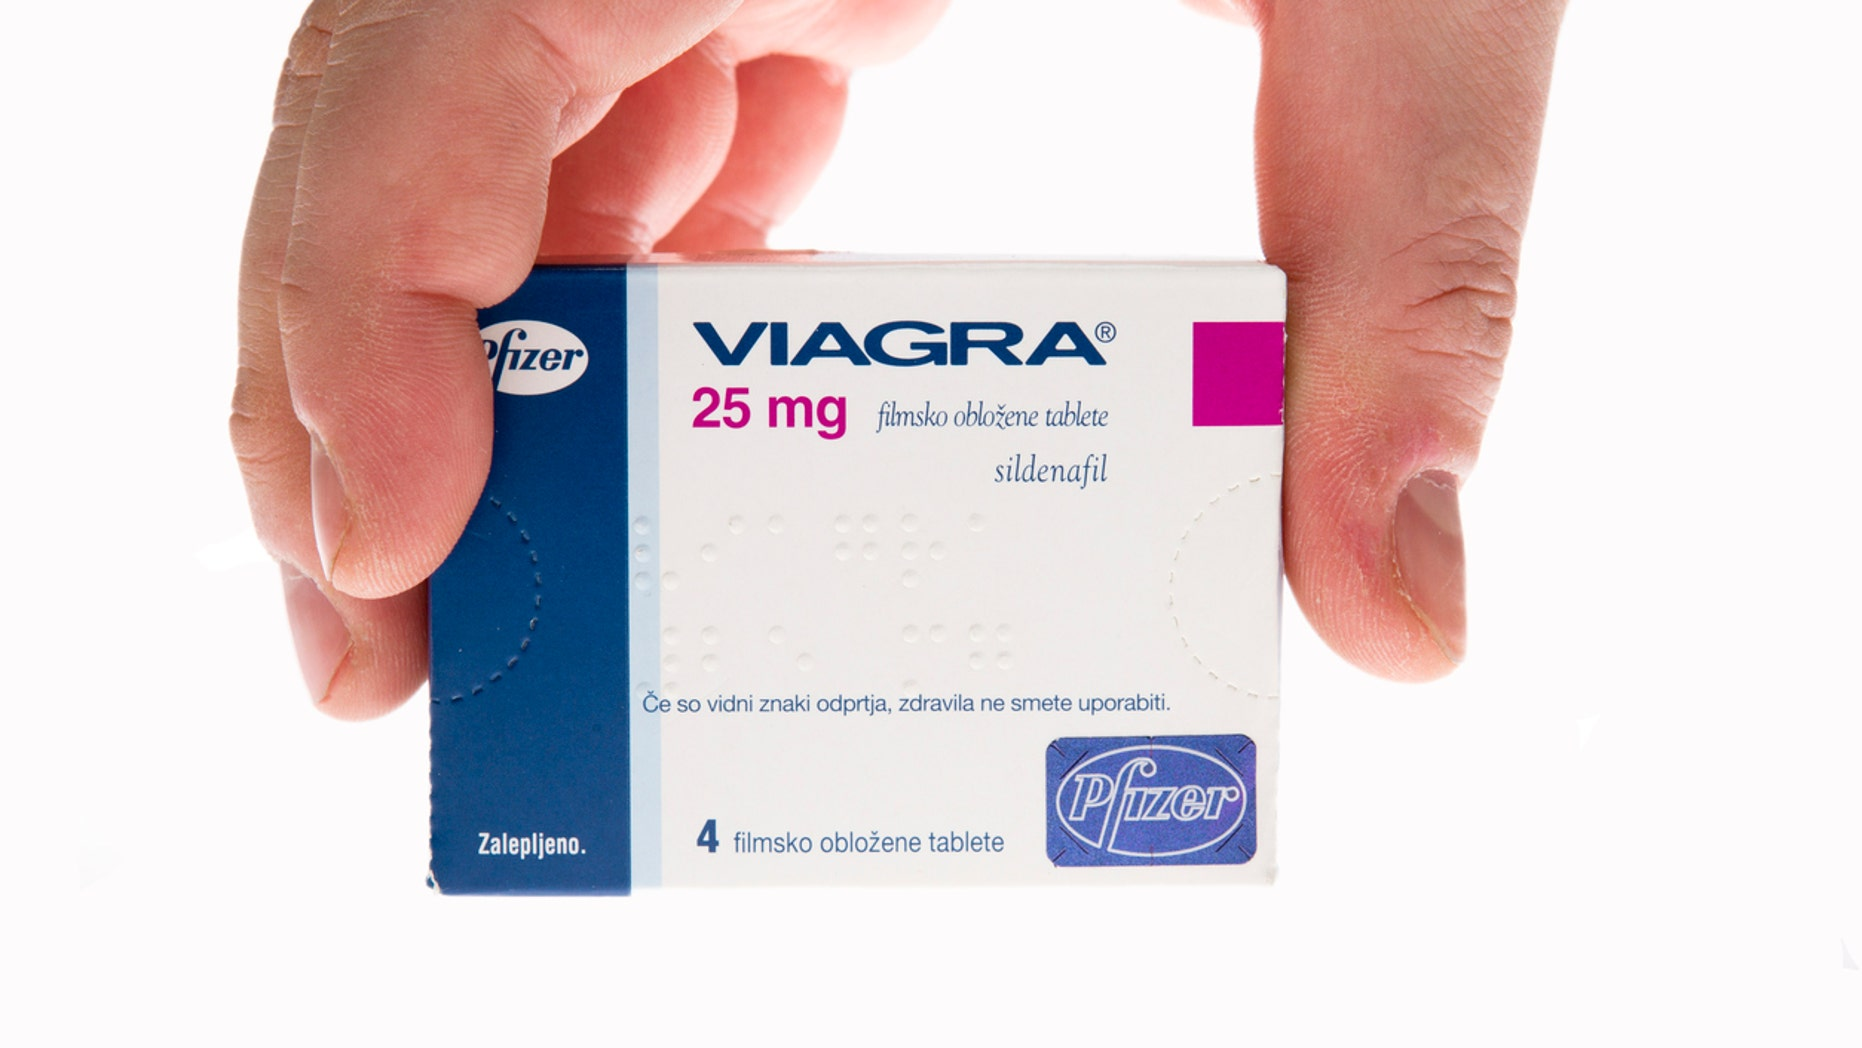 Pfizer plans to start selling an over-the-counter version of the erectile dysfunction medication this spring in the UK.